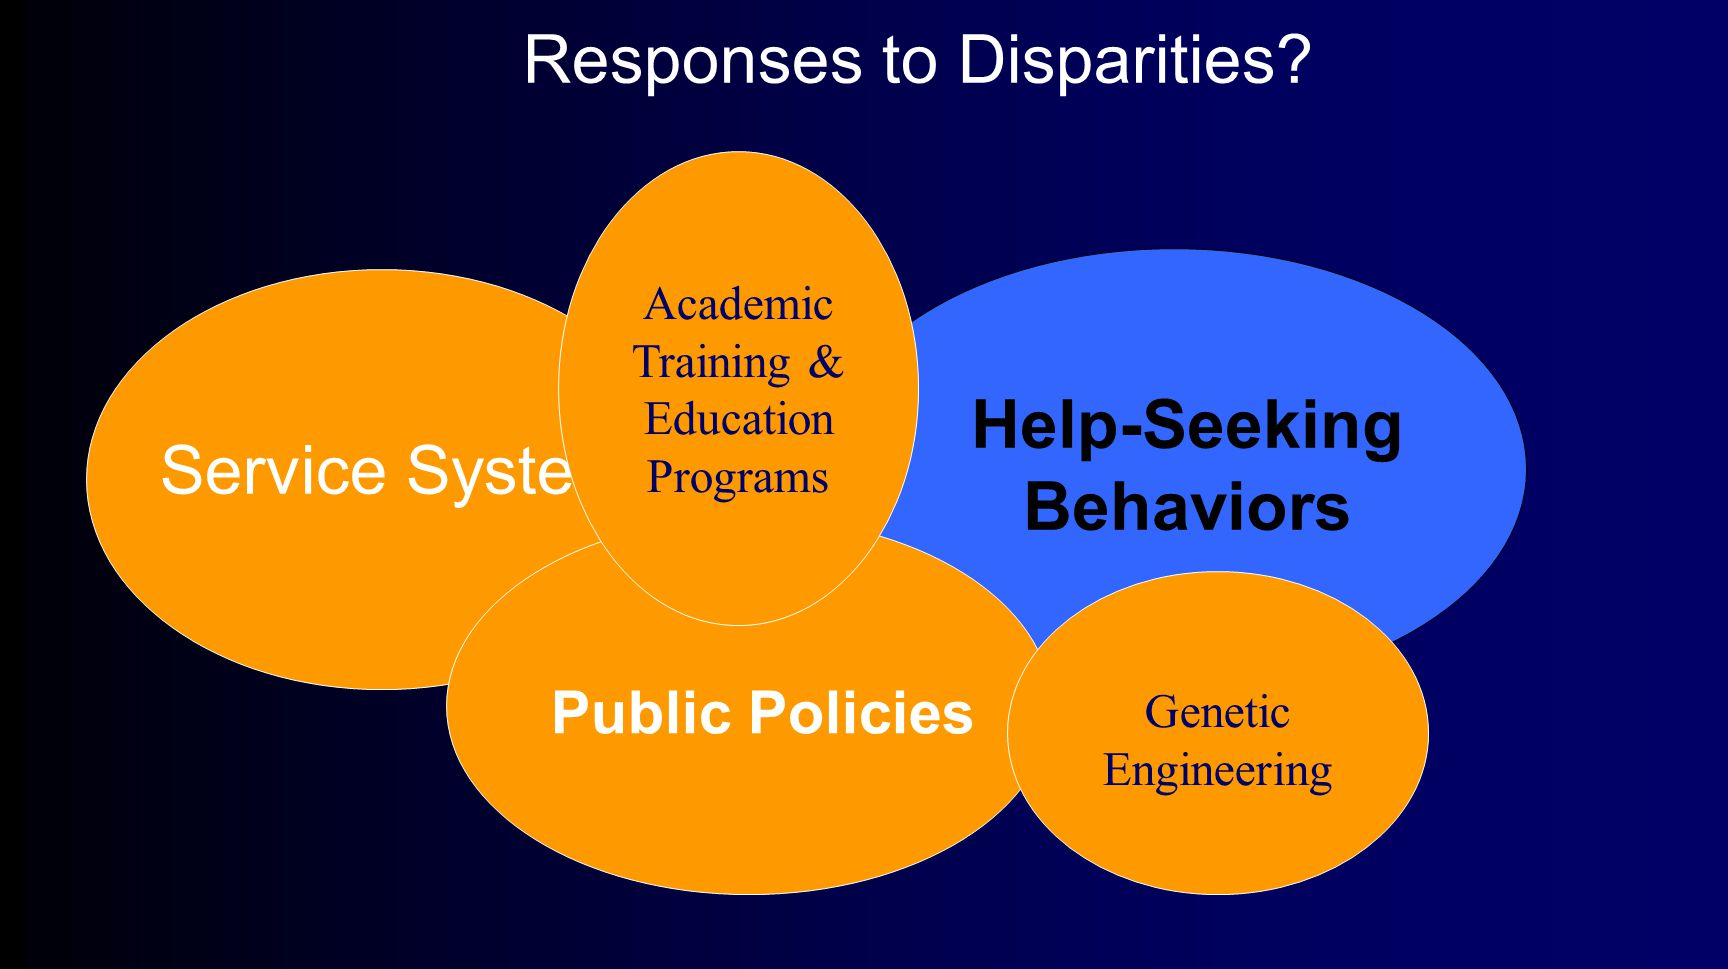 Help-Seeking Behaviors Responses to Disparities.